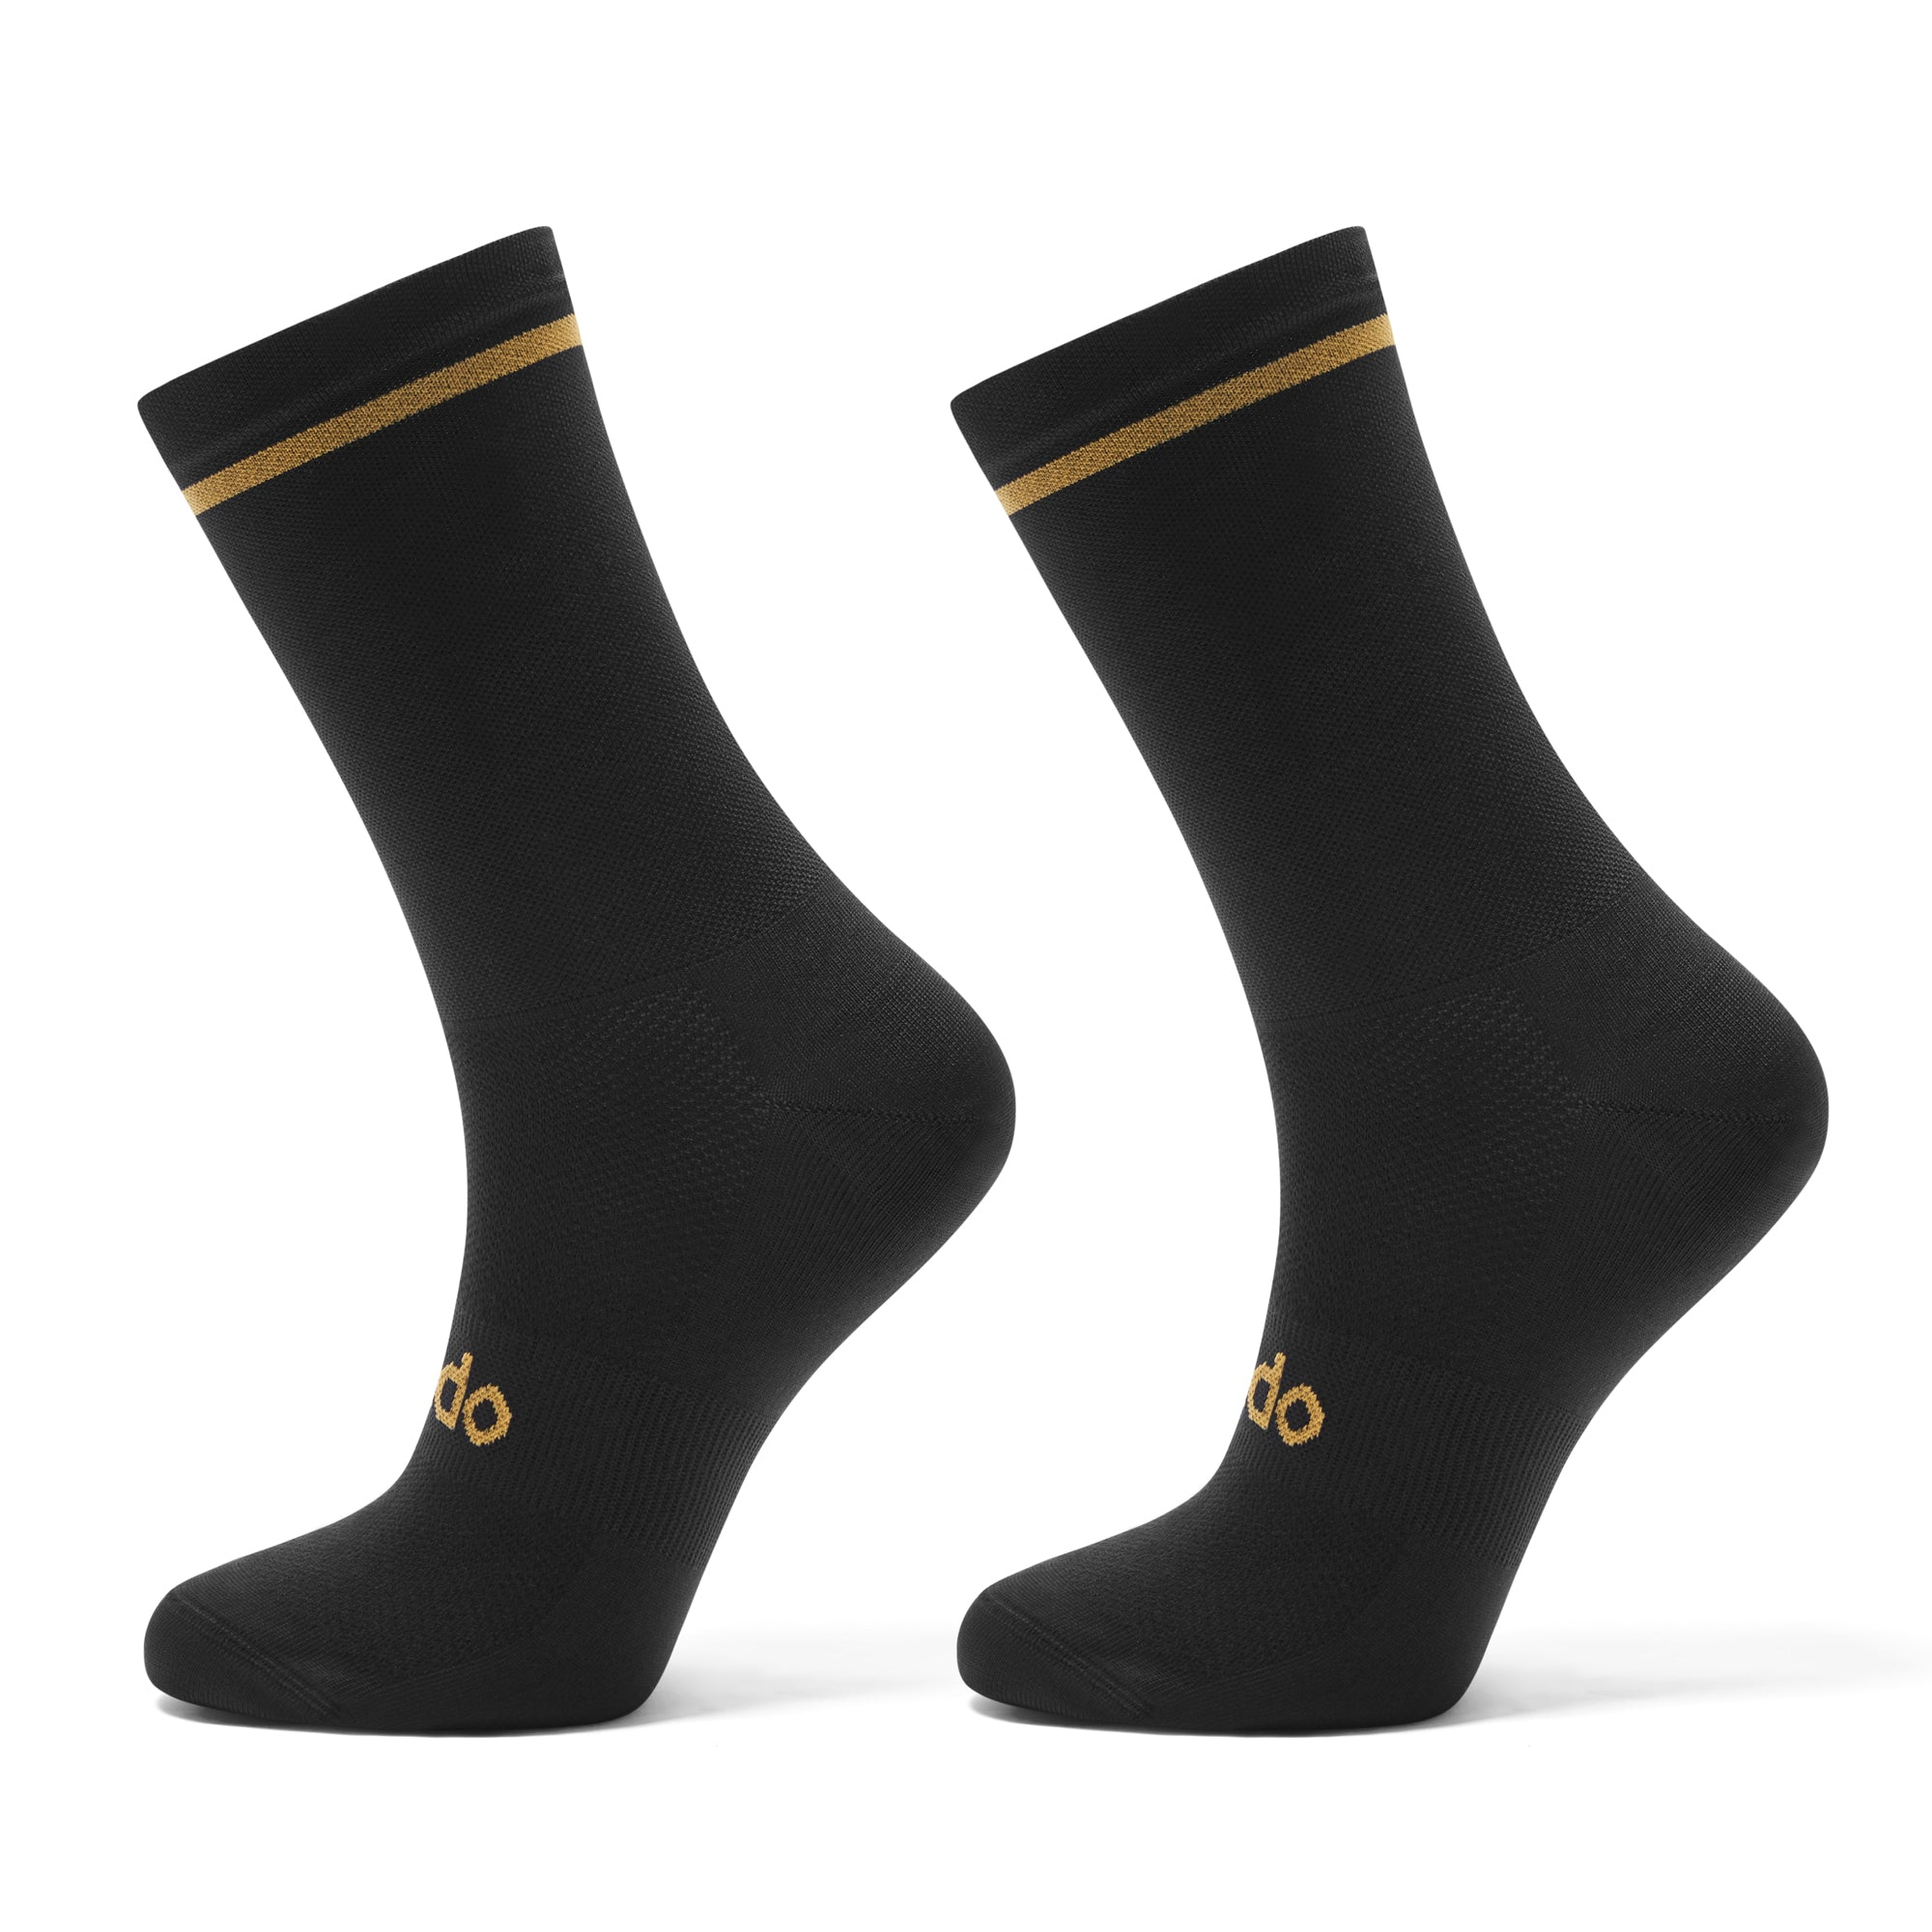 Black cycling socks with gold trim